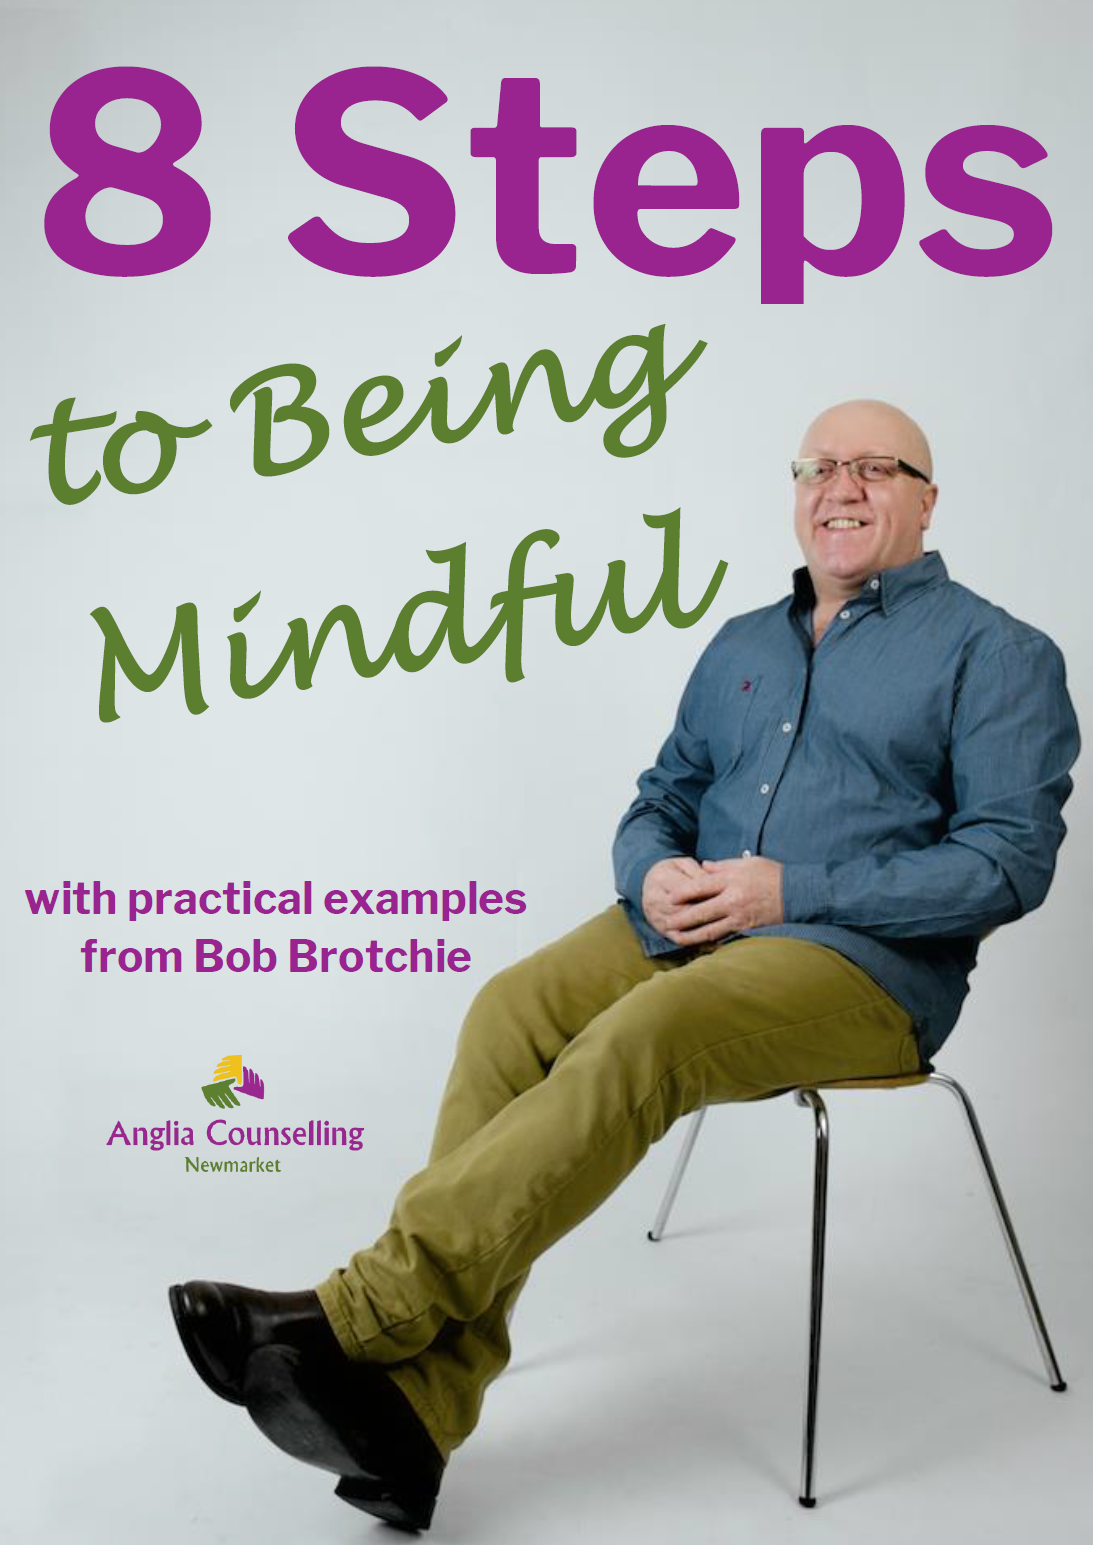 8 Steps to Being Mindful